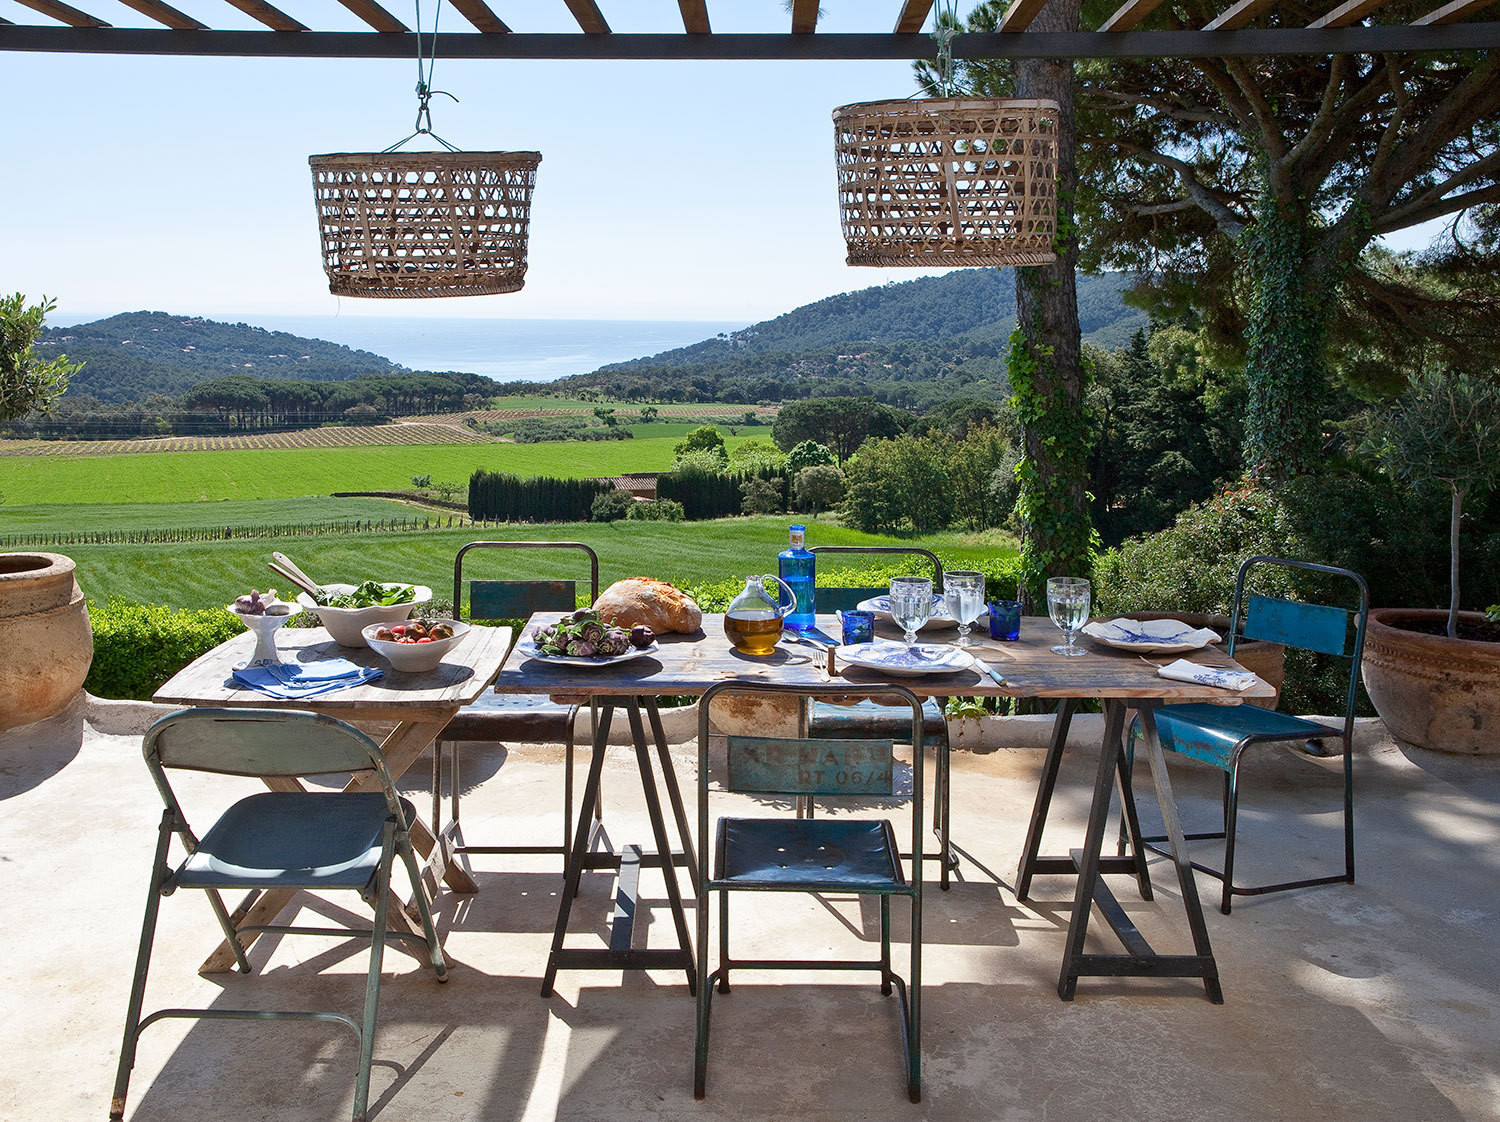 The dining terrace looks out on the Costa Brava landscape and Mediterranean Sea.